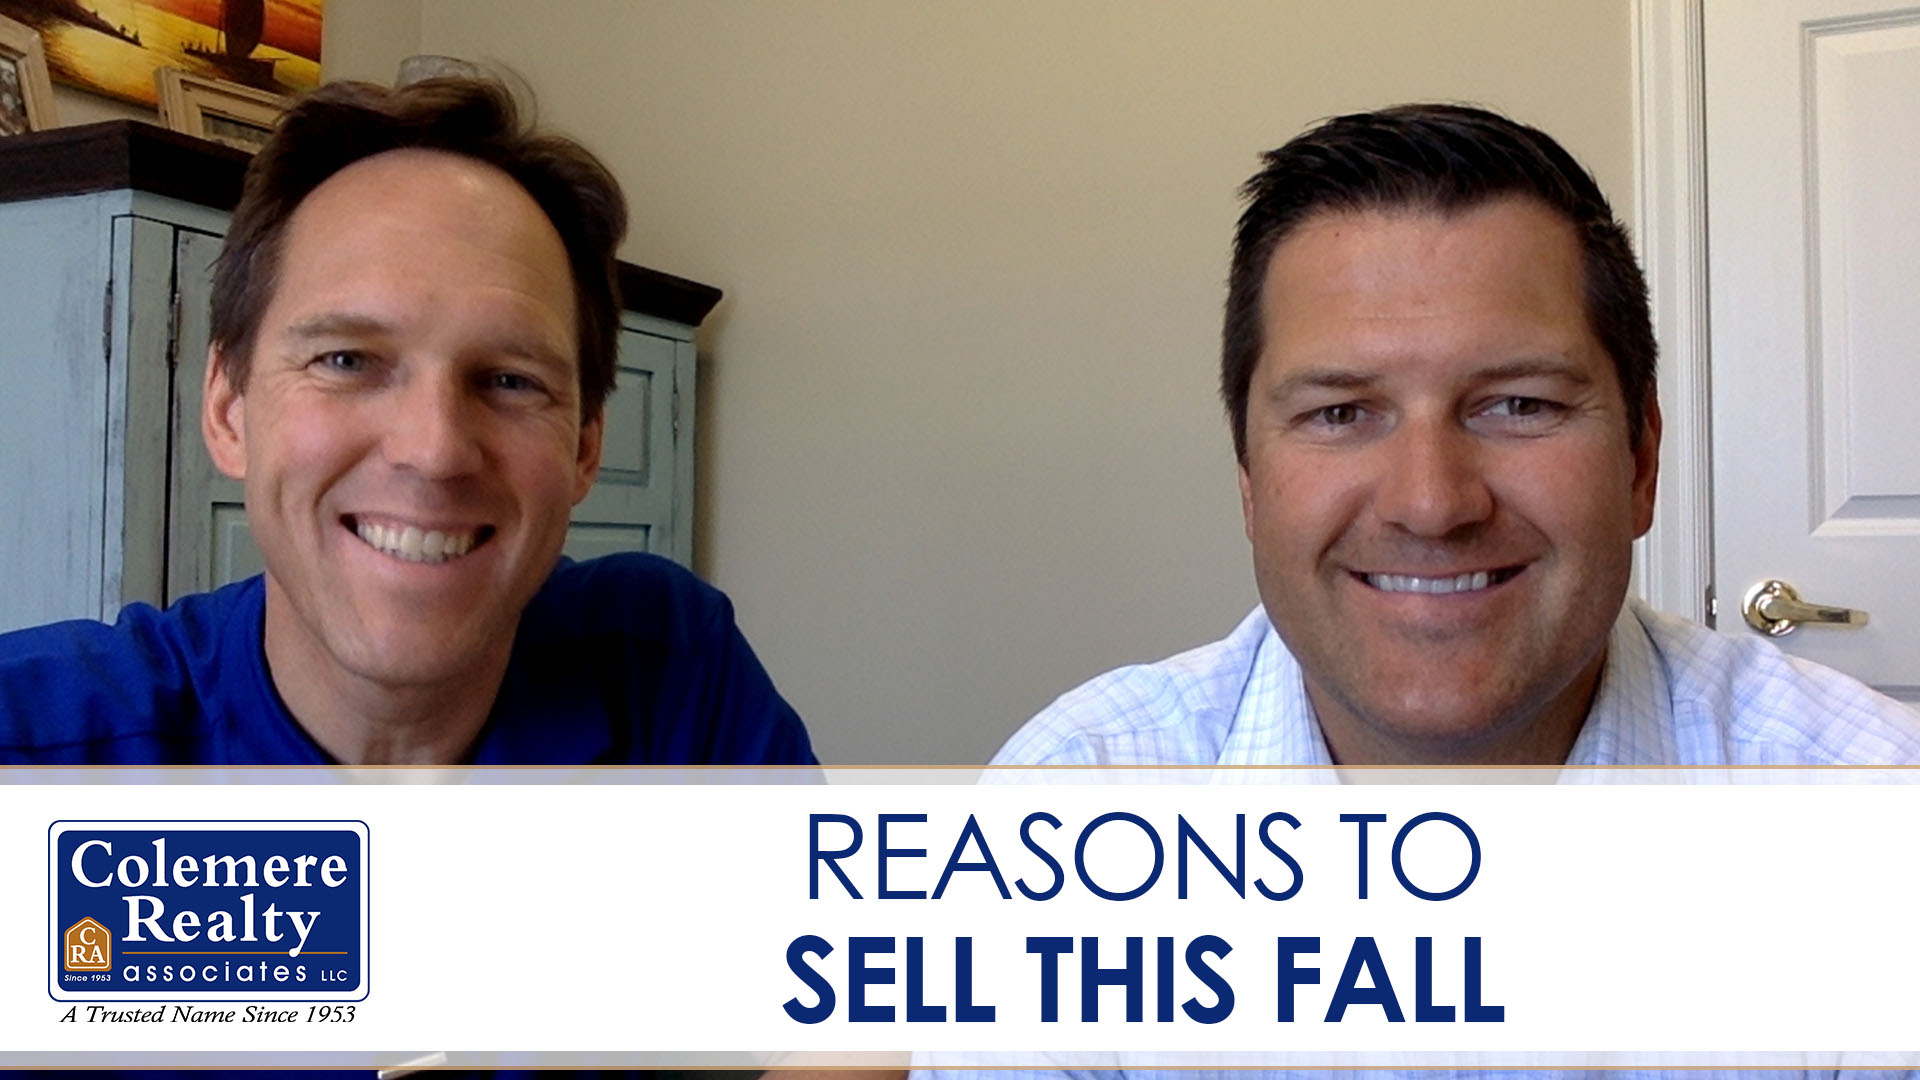 What Makes Fall a Great Time to Put Your Home on the Market?